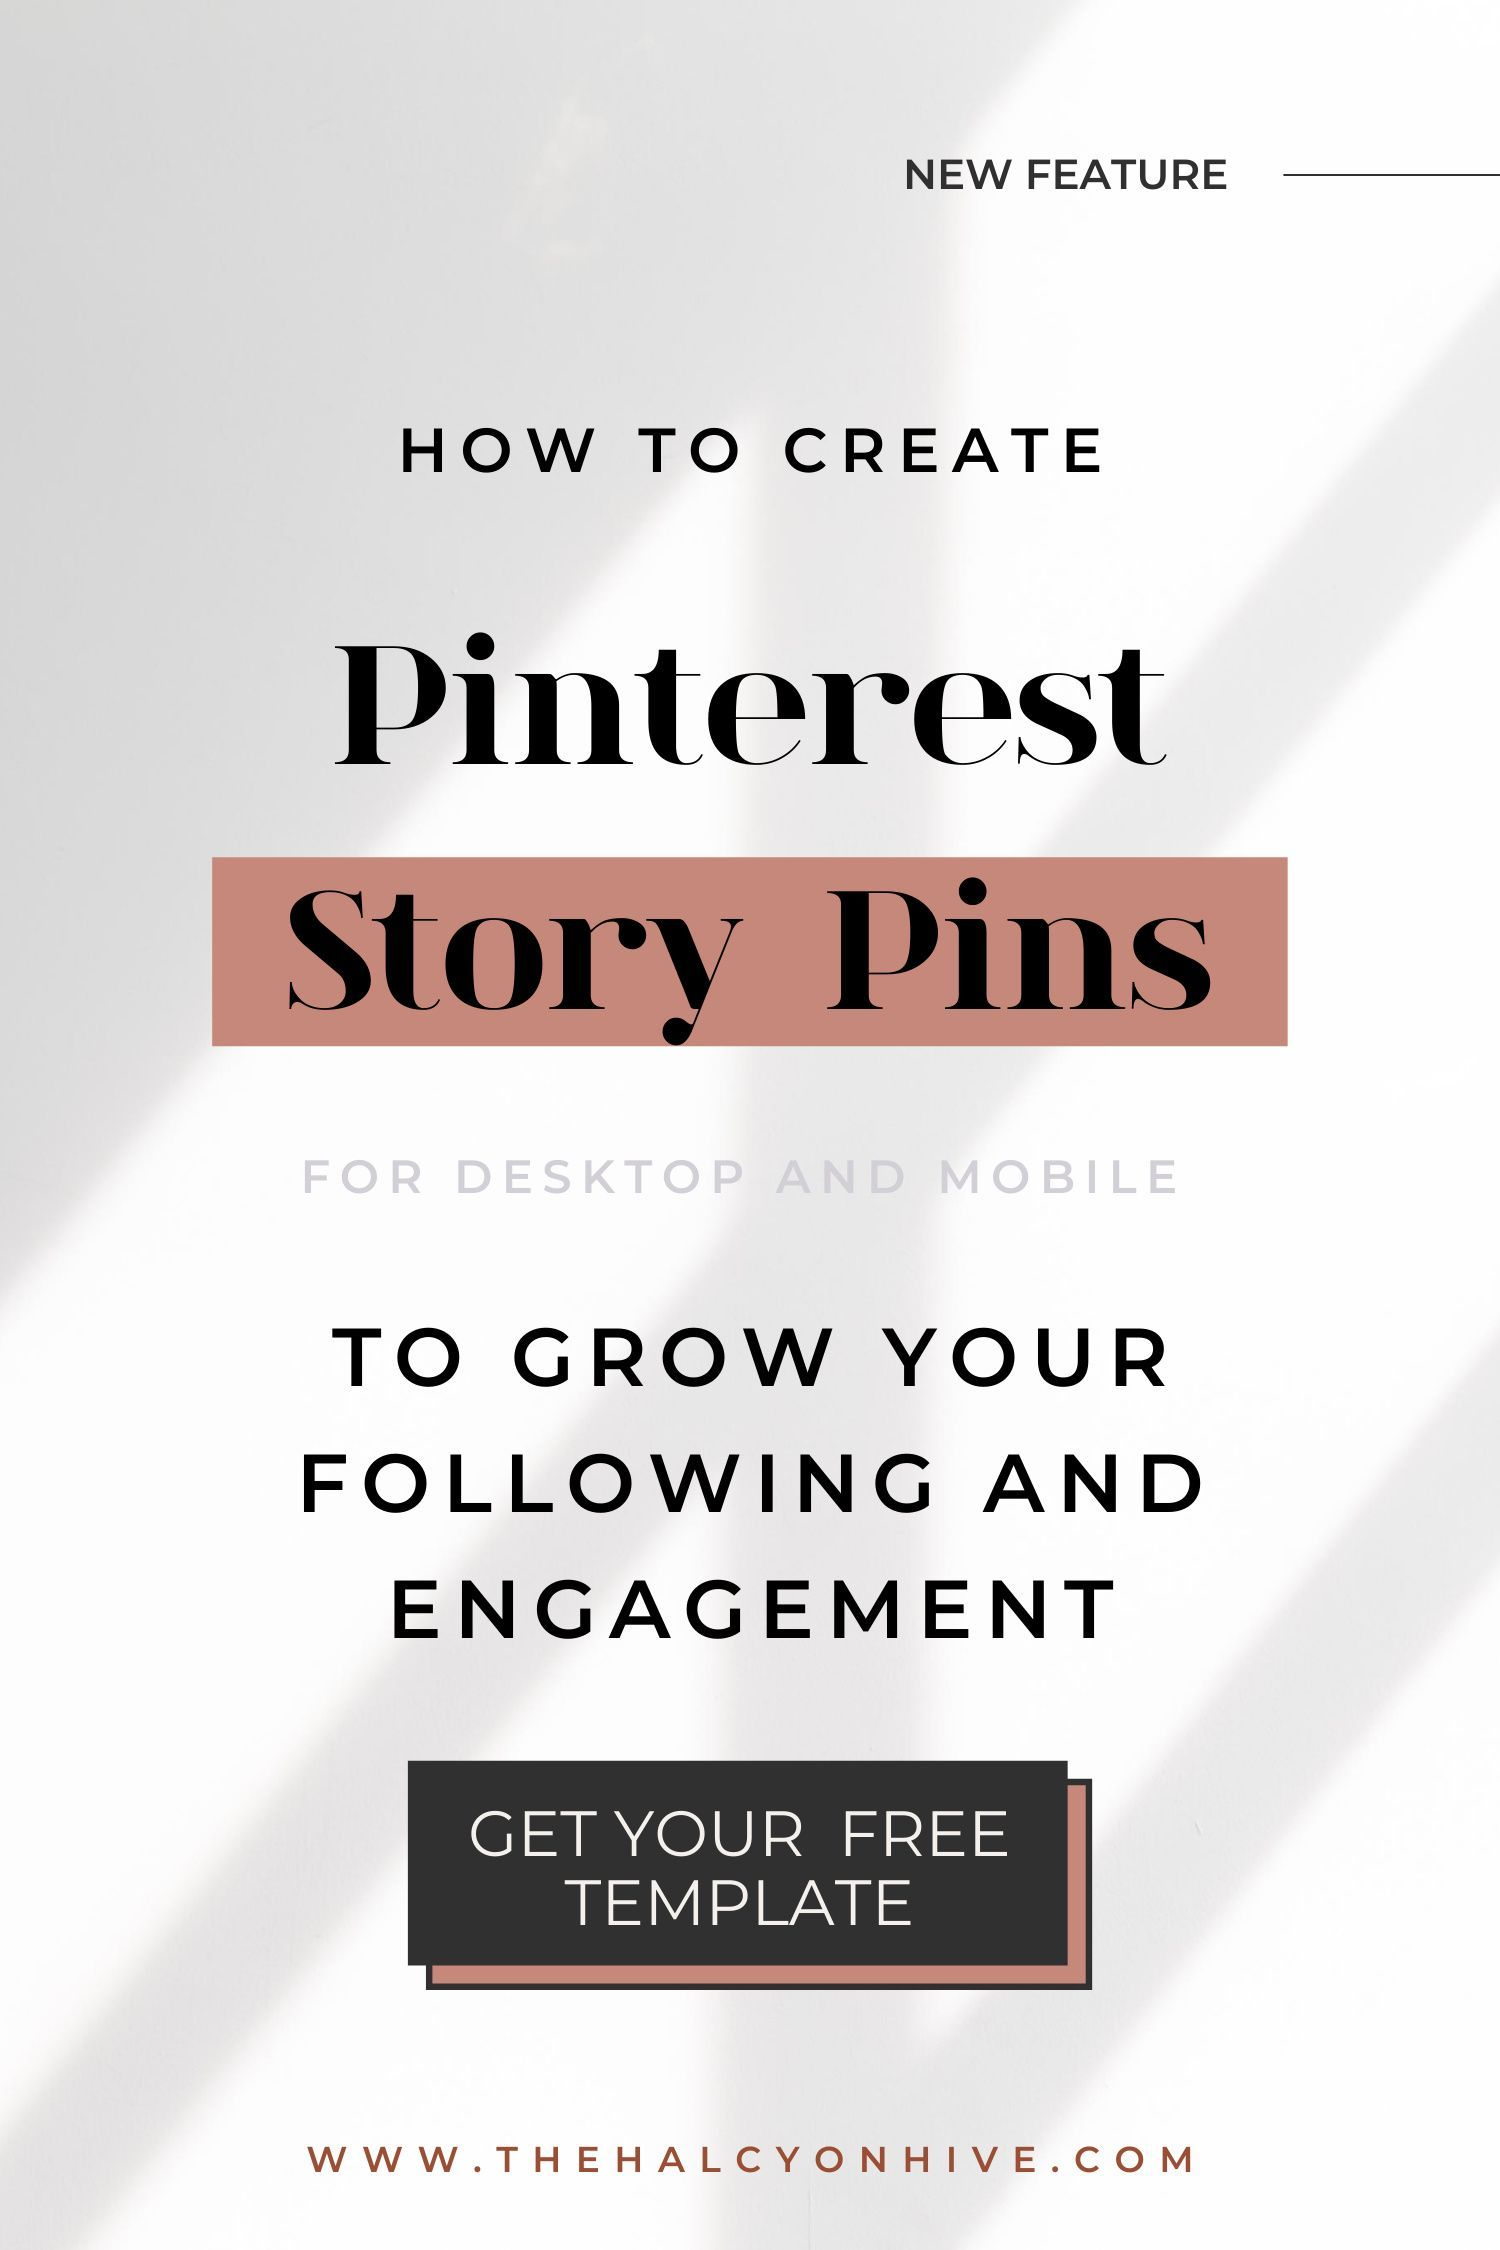 Watch the tutorial to learn how to create engaging pins